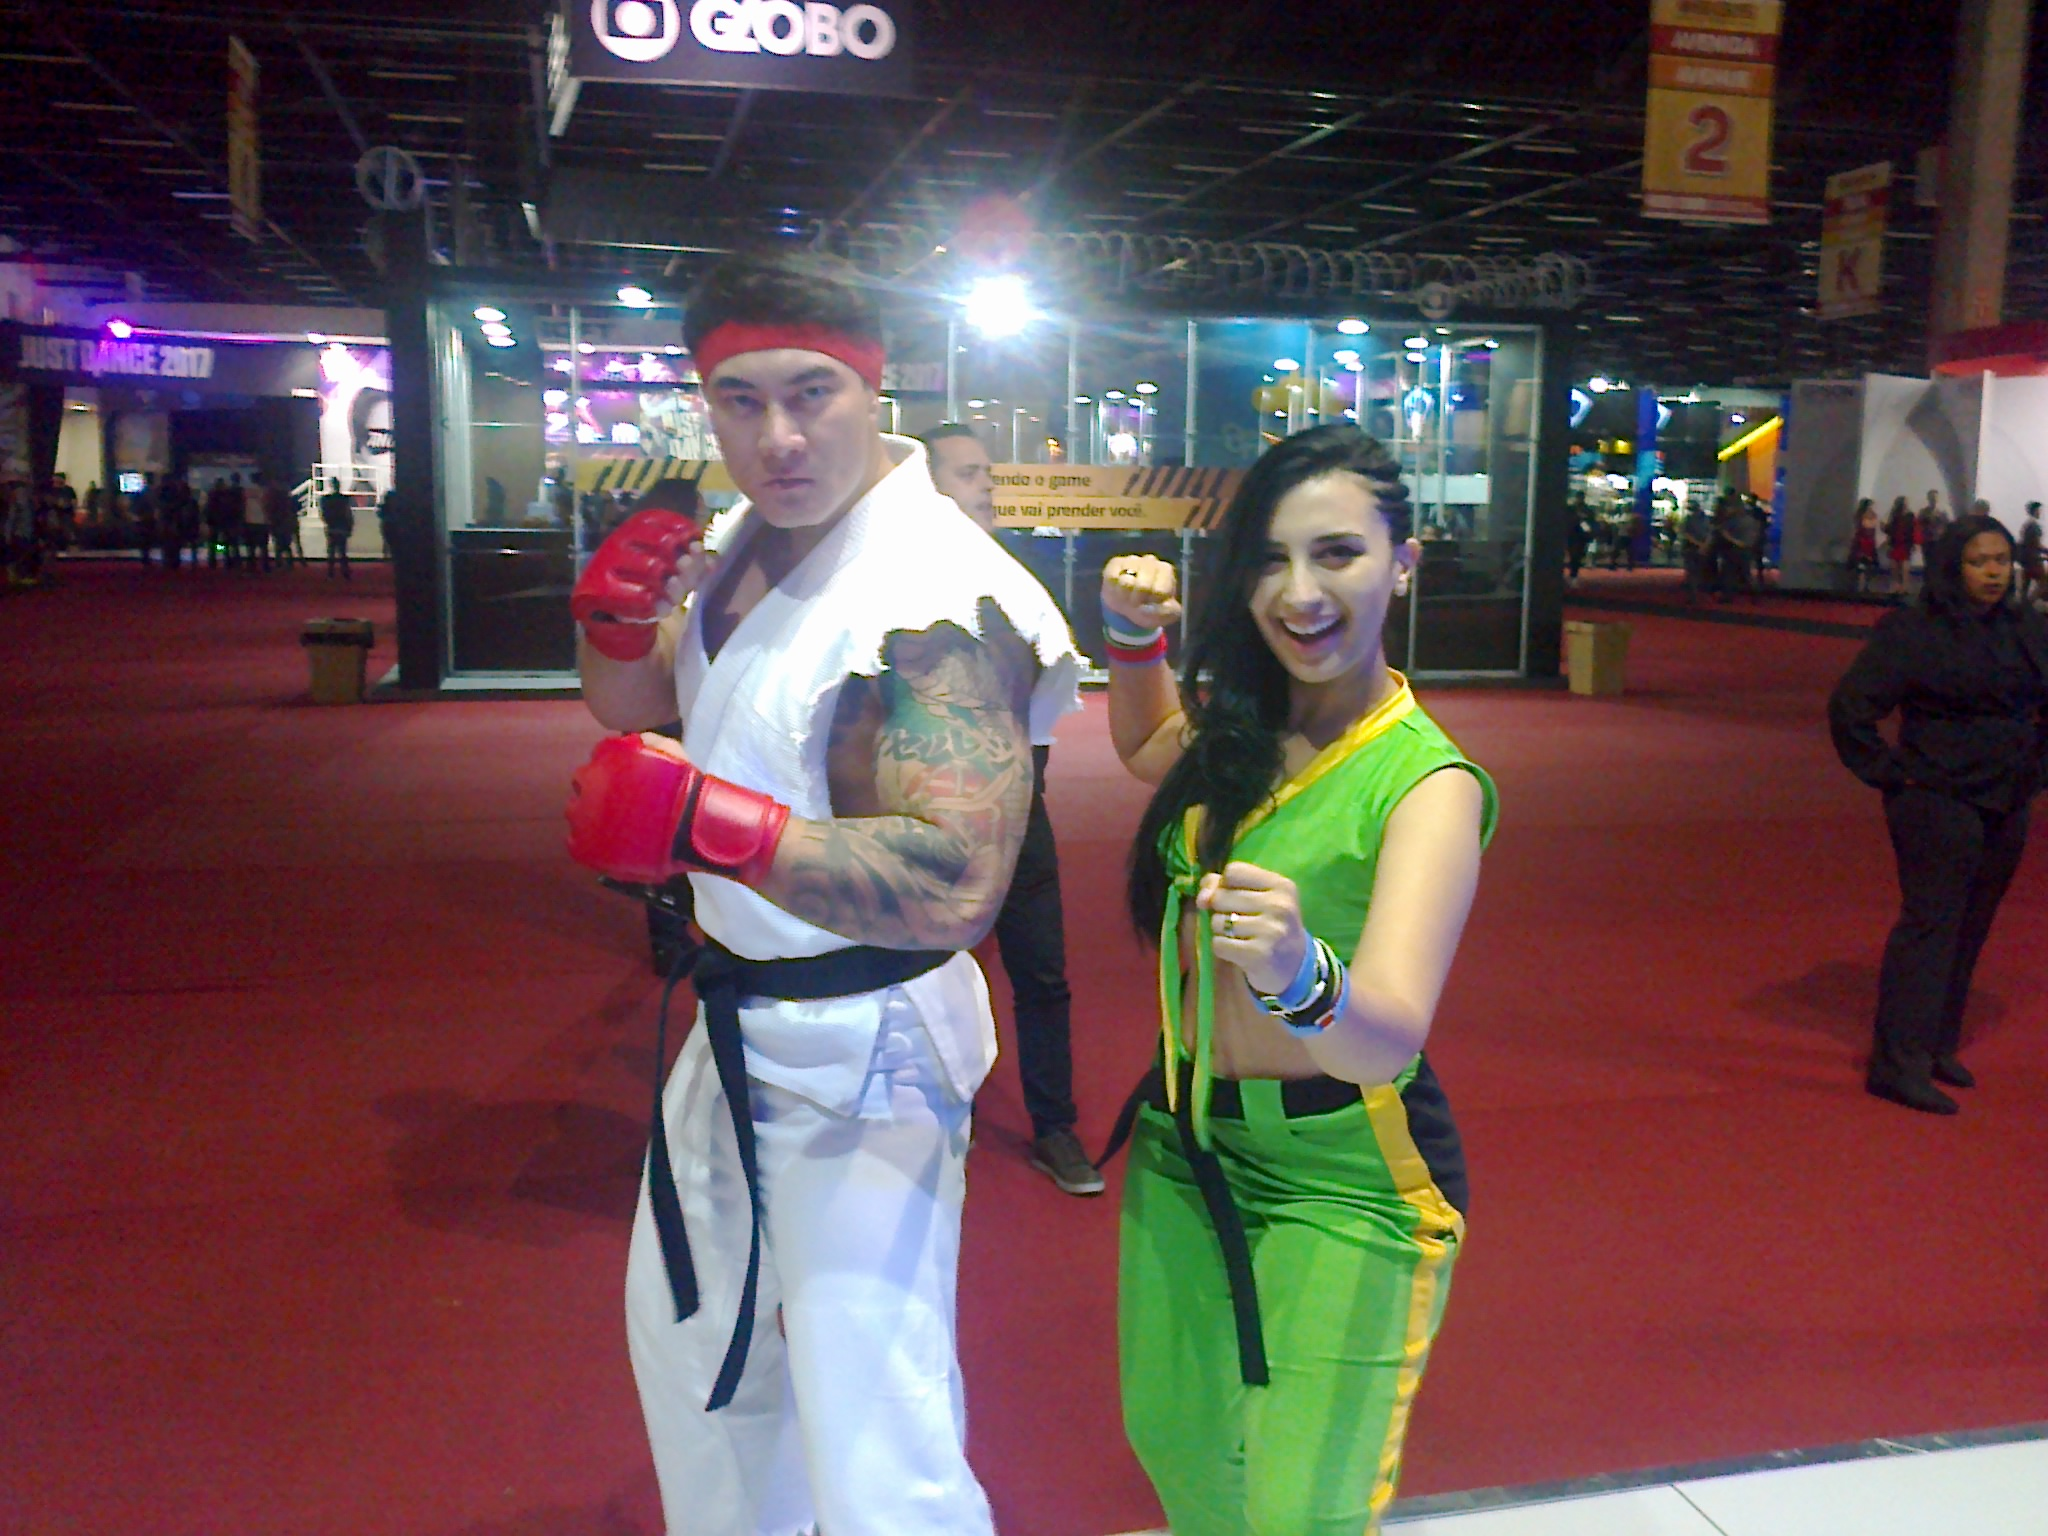 Cosplayers vestidos como Ryu e Laura, personagens de Street Fighter.